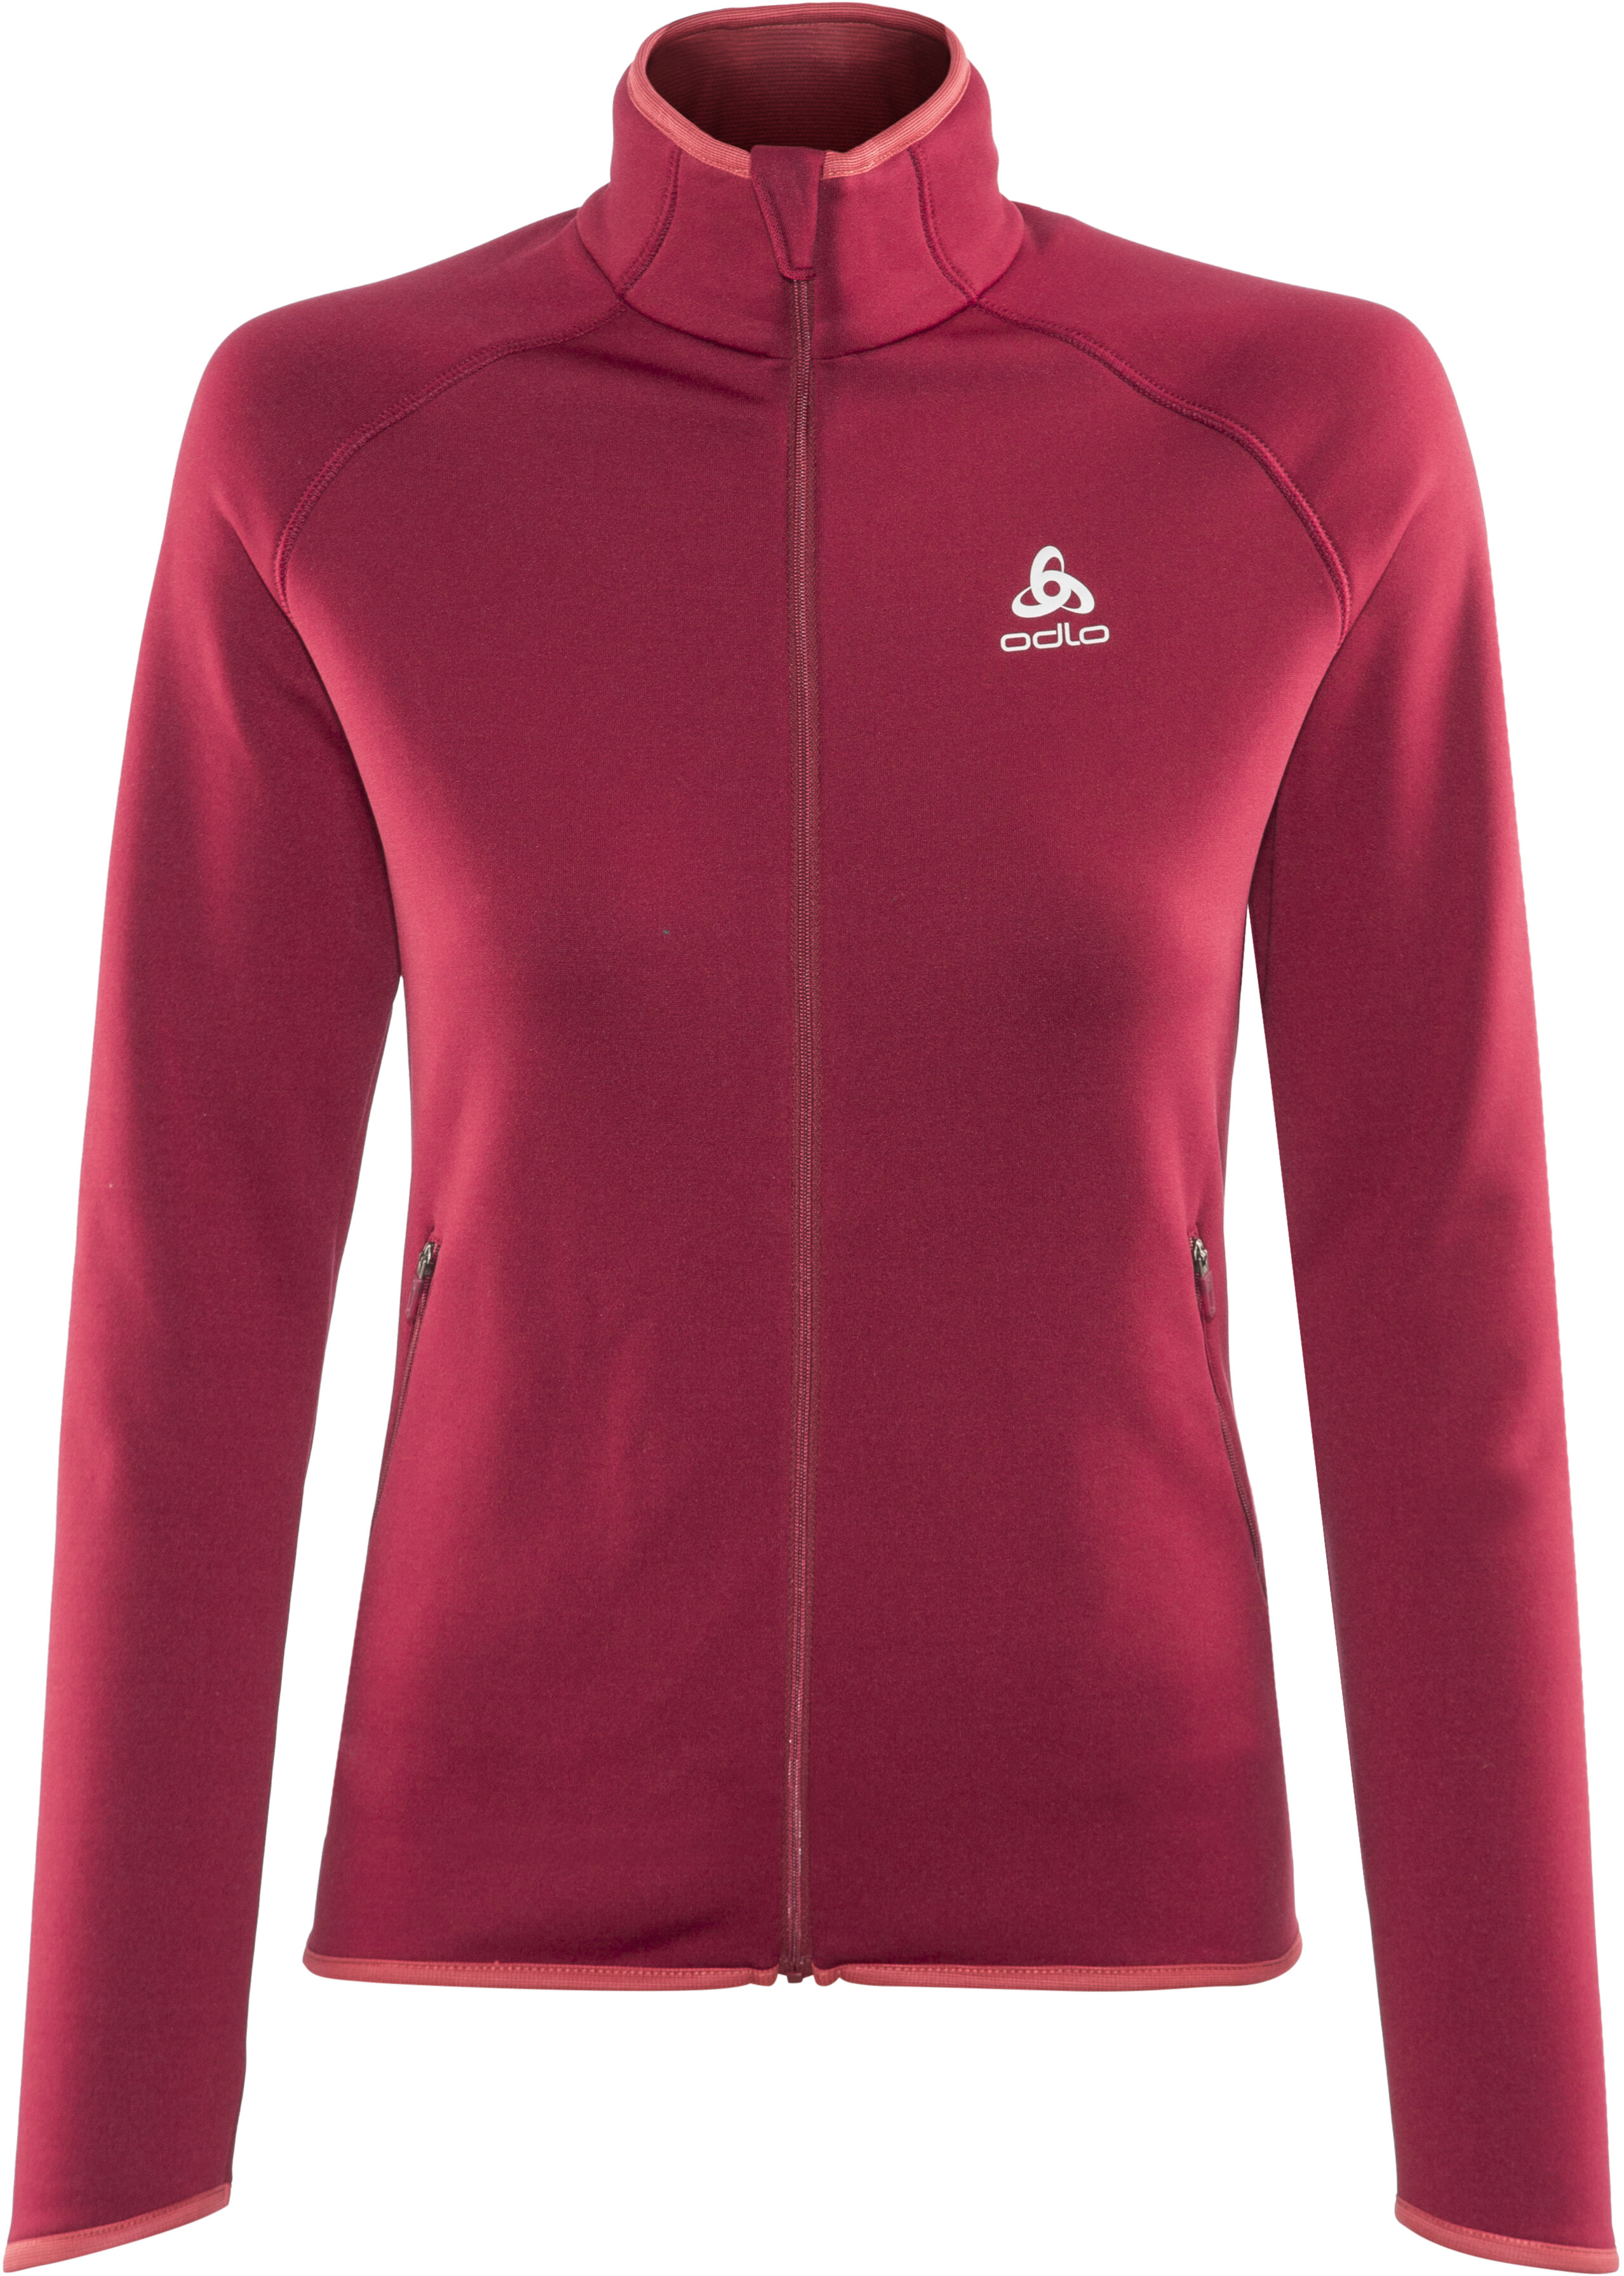 0f05fc8a8 Odlo Carve Warm Midlayer Women red at Addnature.co.uk